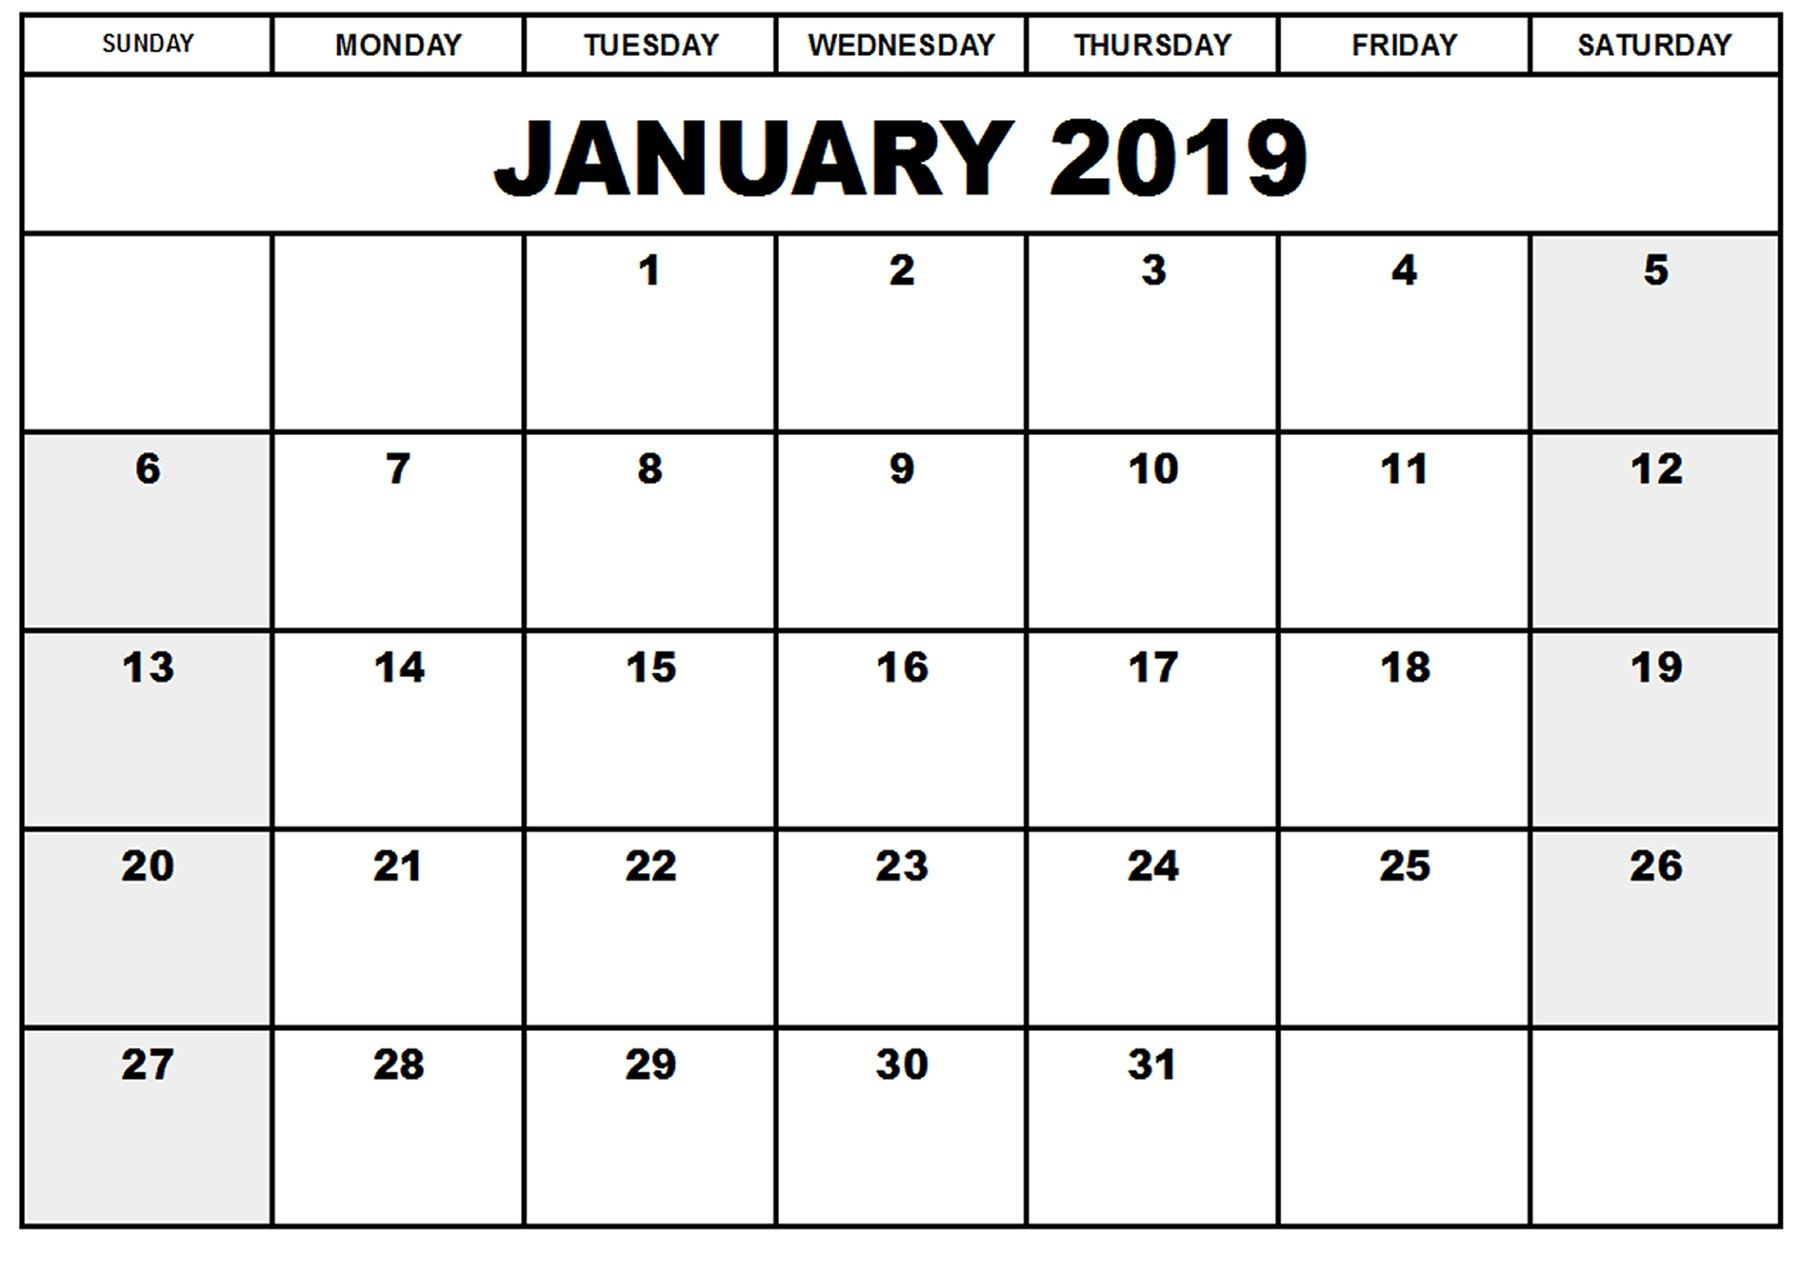 Print Online Calendar 2019 throughout January 2020 Waterproof Calendar